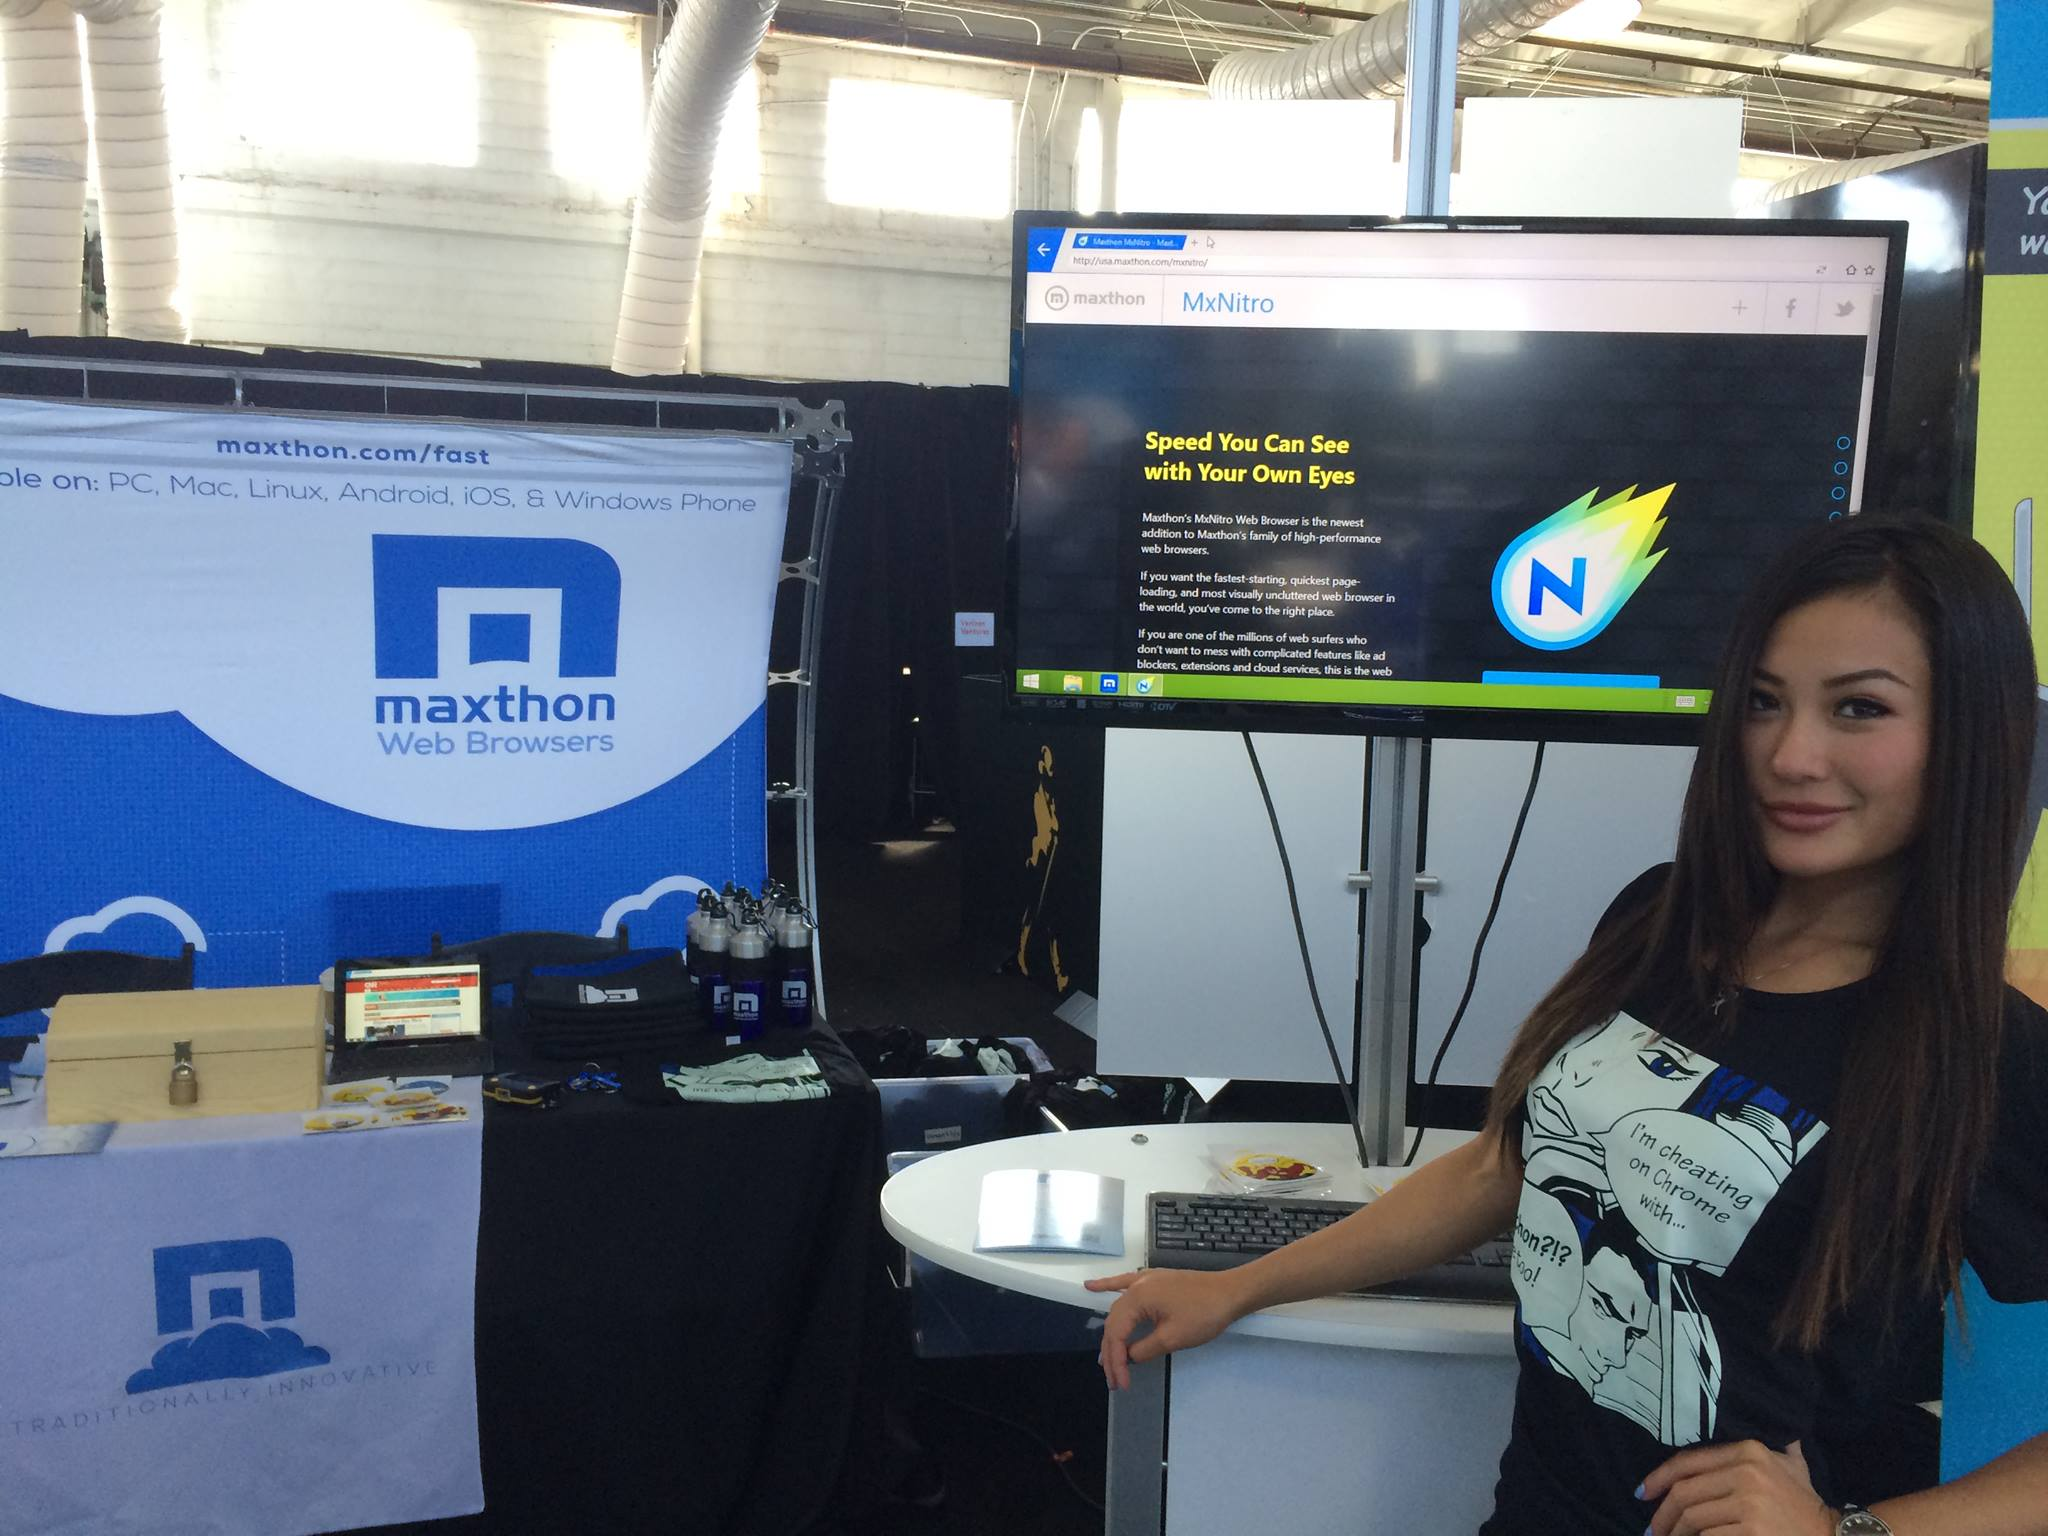 Maxthon at a recent expo. It's fast!